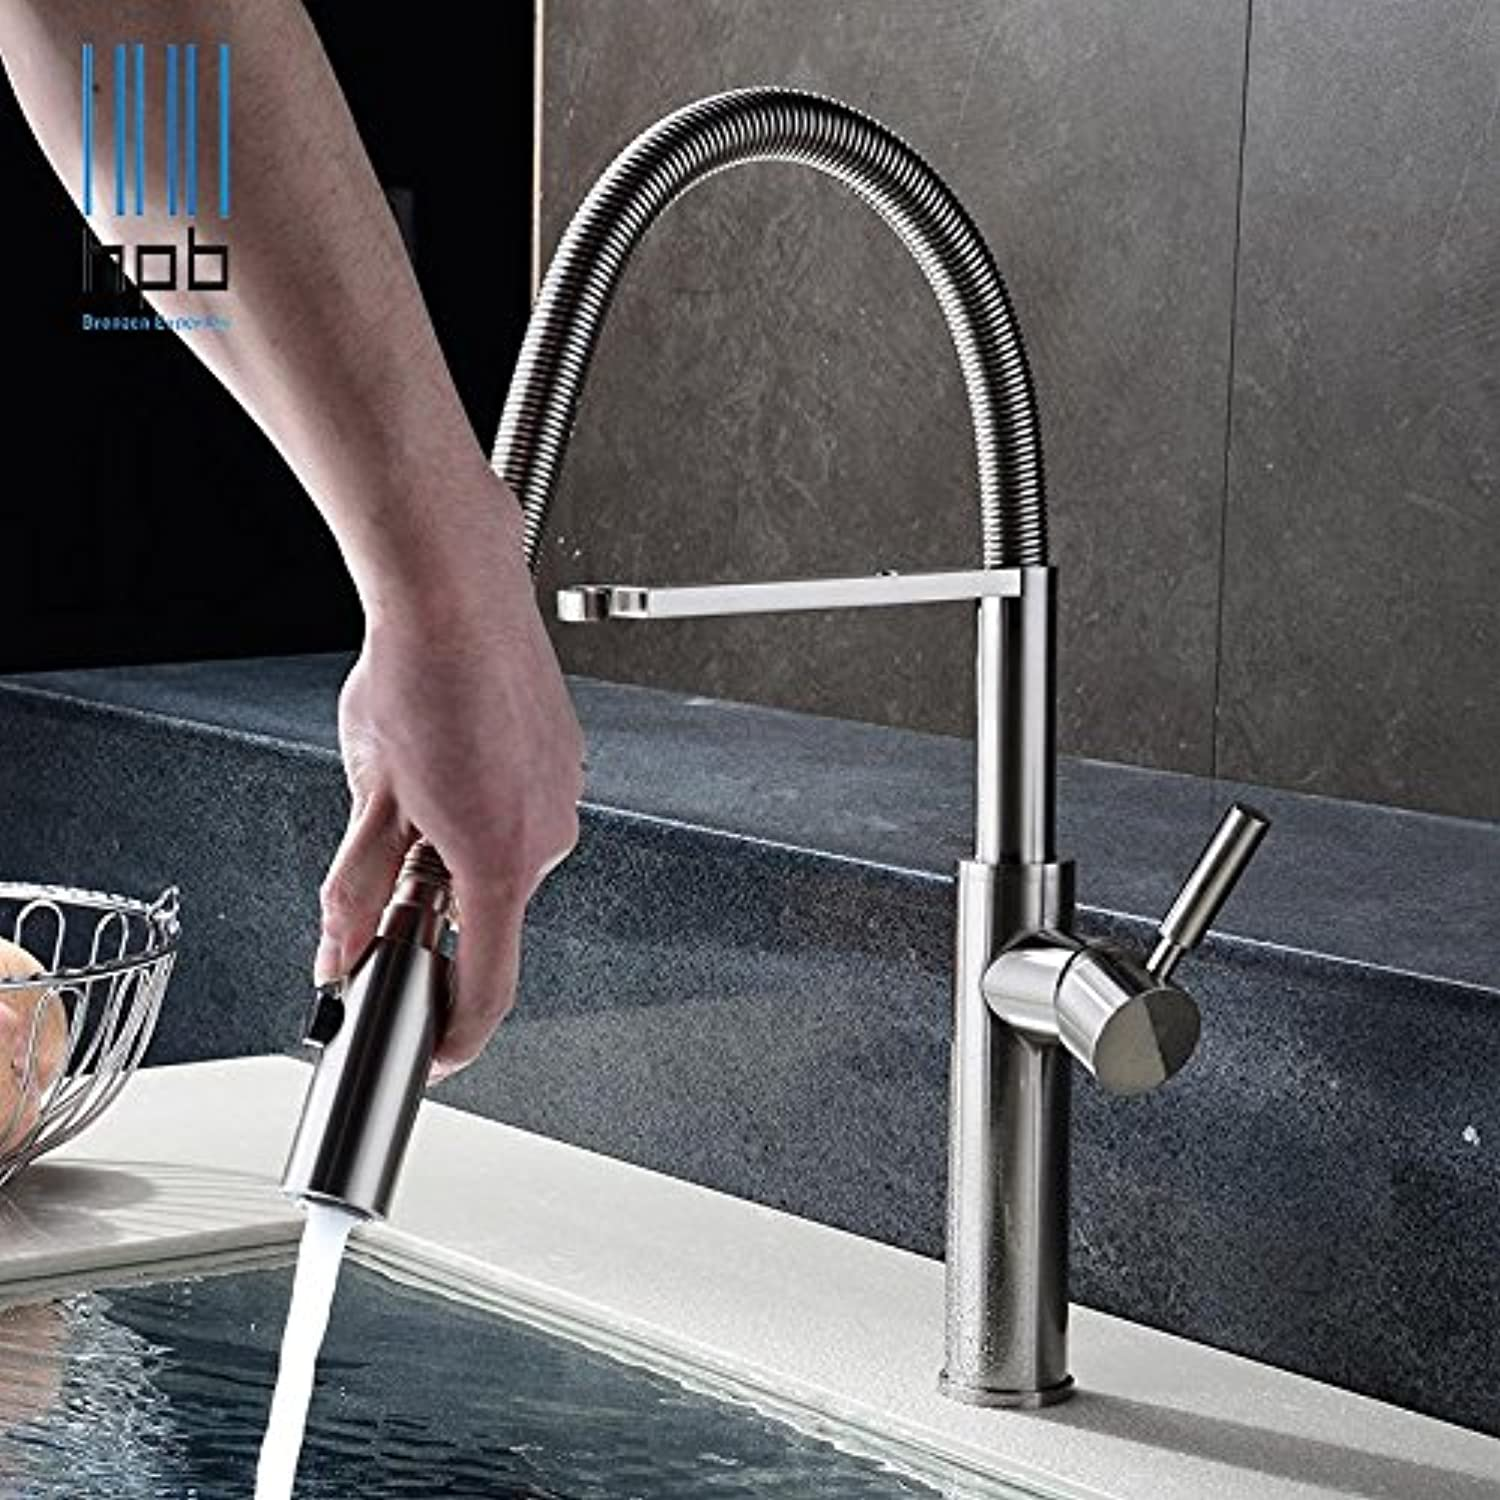 Tw All Copper Hot and Cold Spring Pulling Kitchen Faucet   Kitchen Sink Brushing Faucet (redary Type)